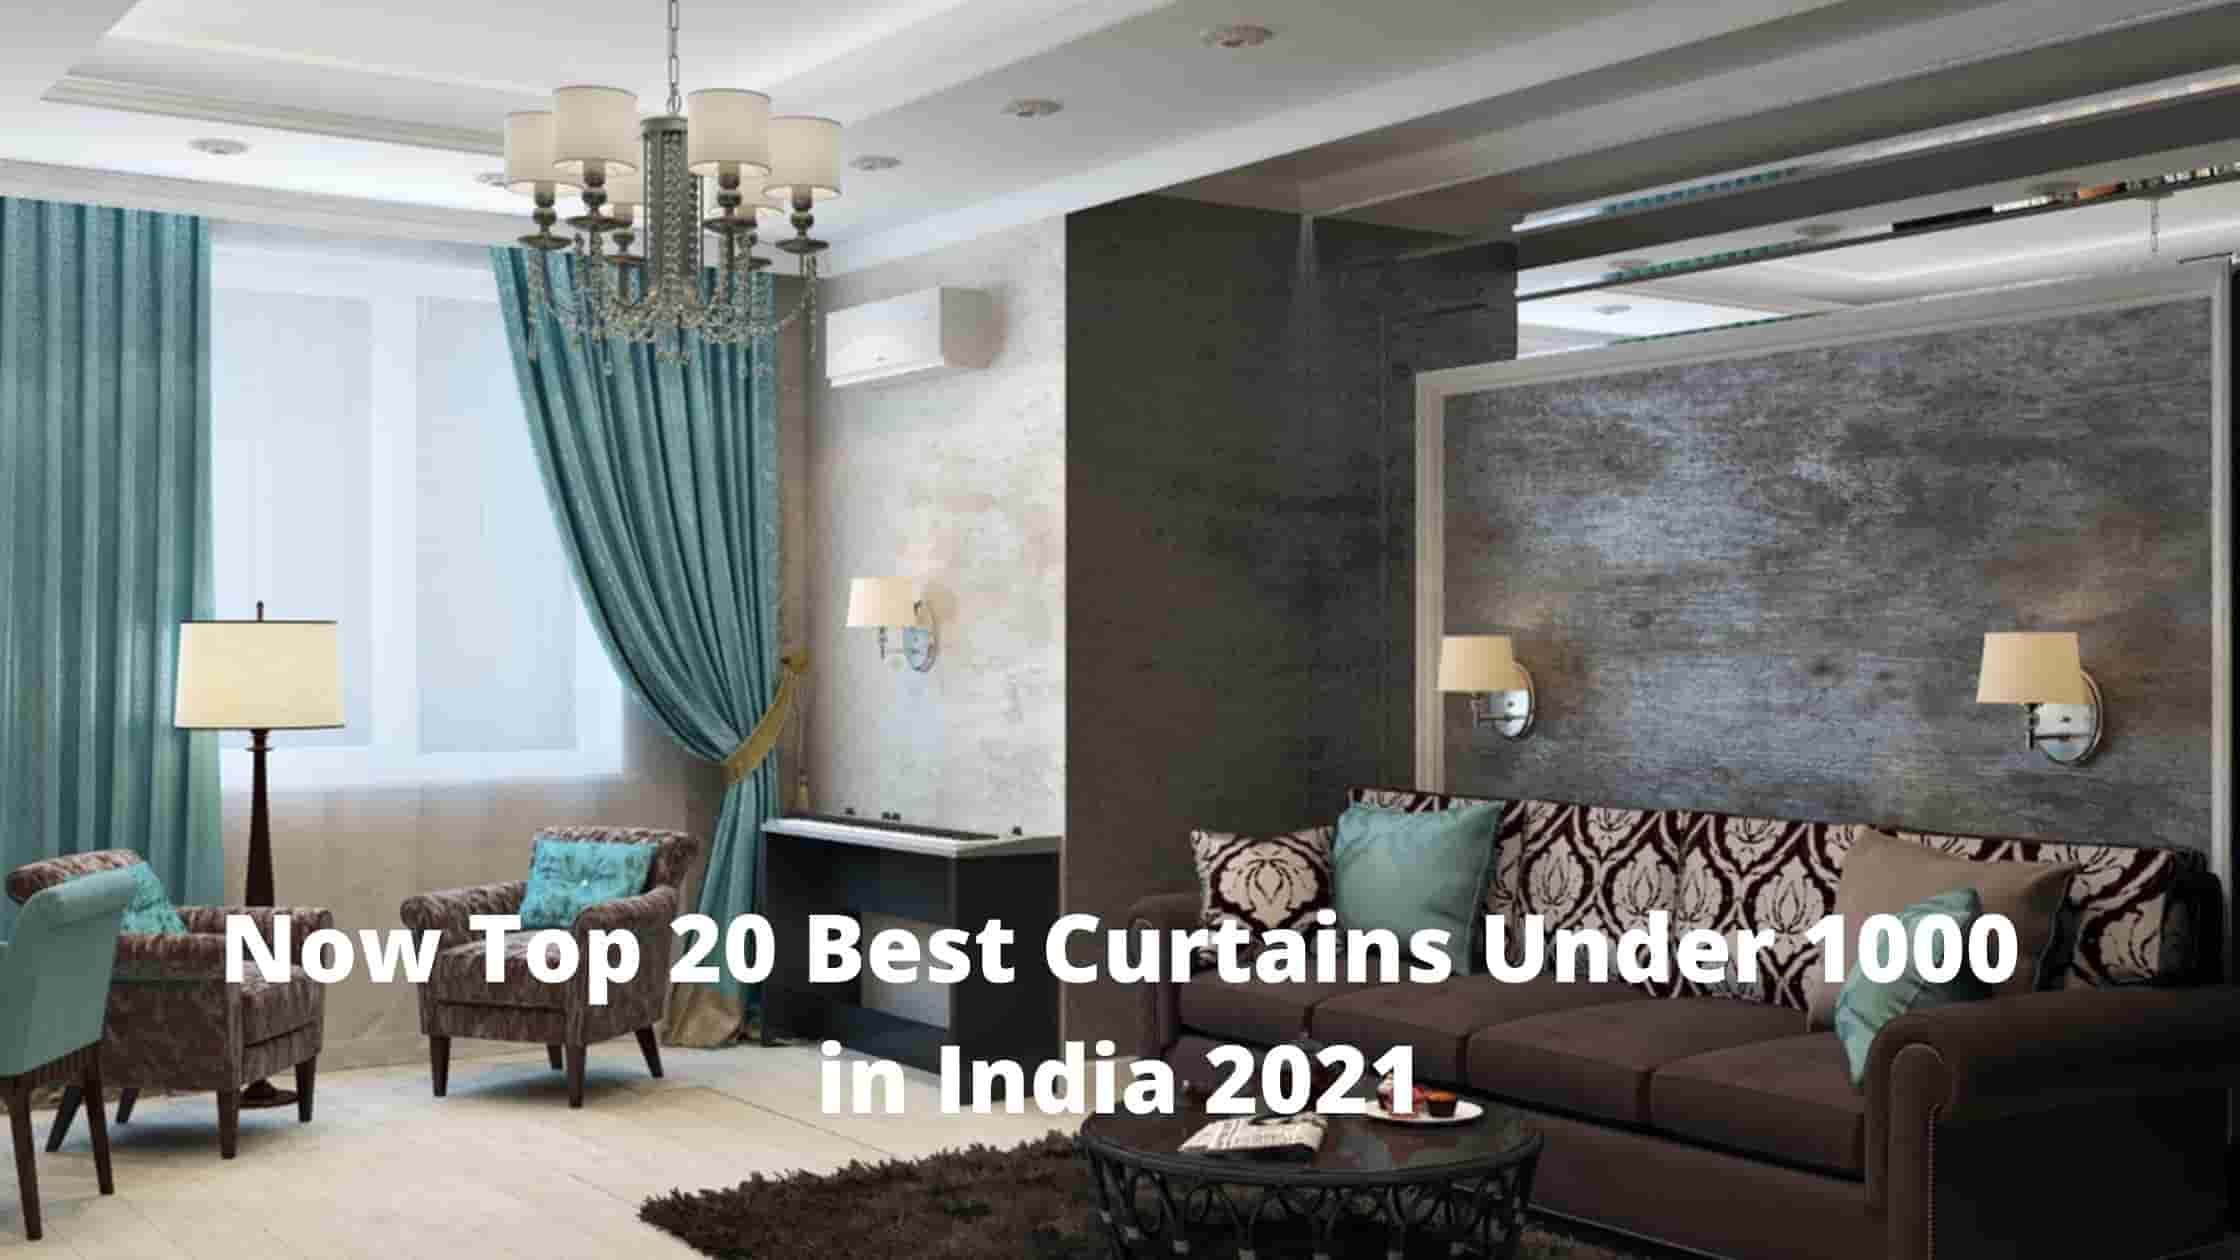 Now Top 20 Best Curtains Under 1000 in India 2021 [Bengali]